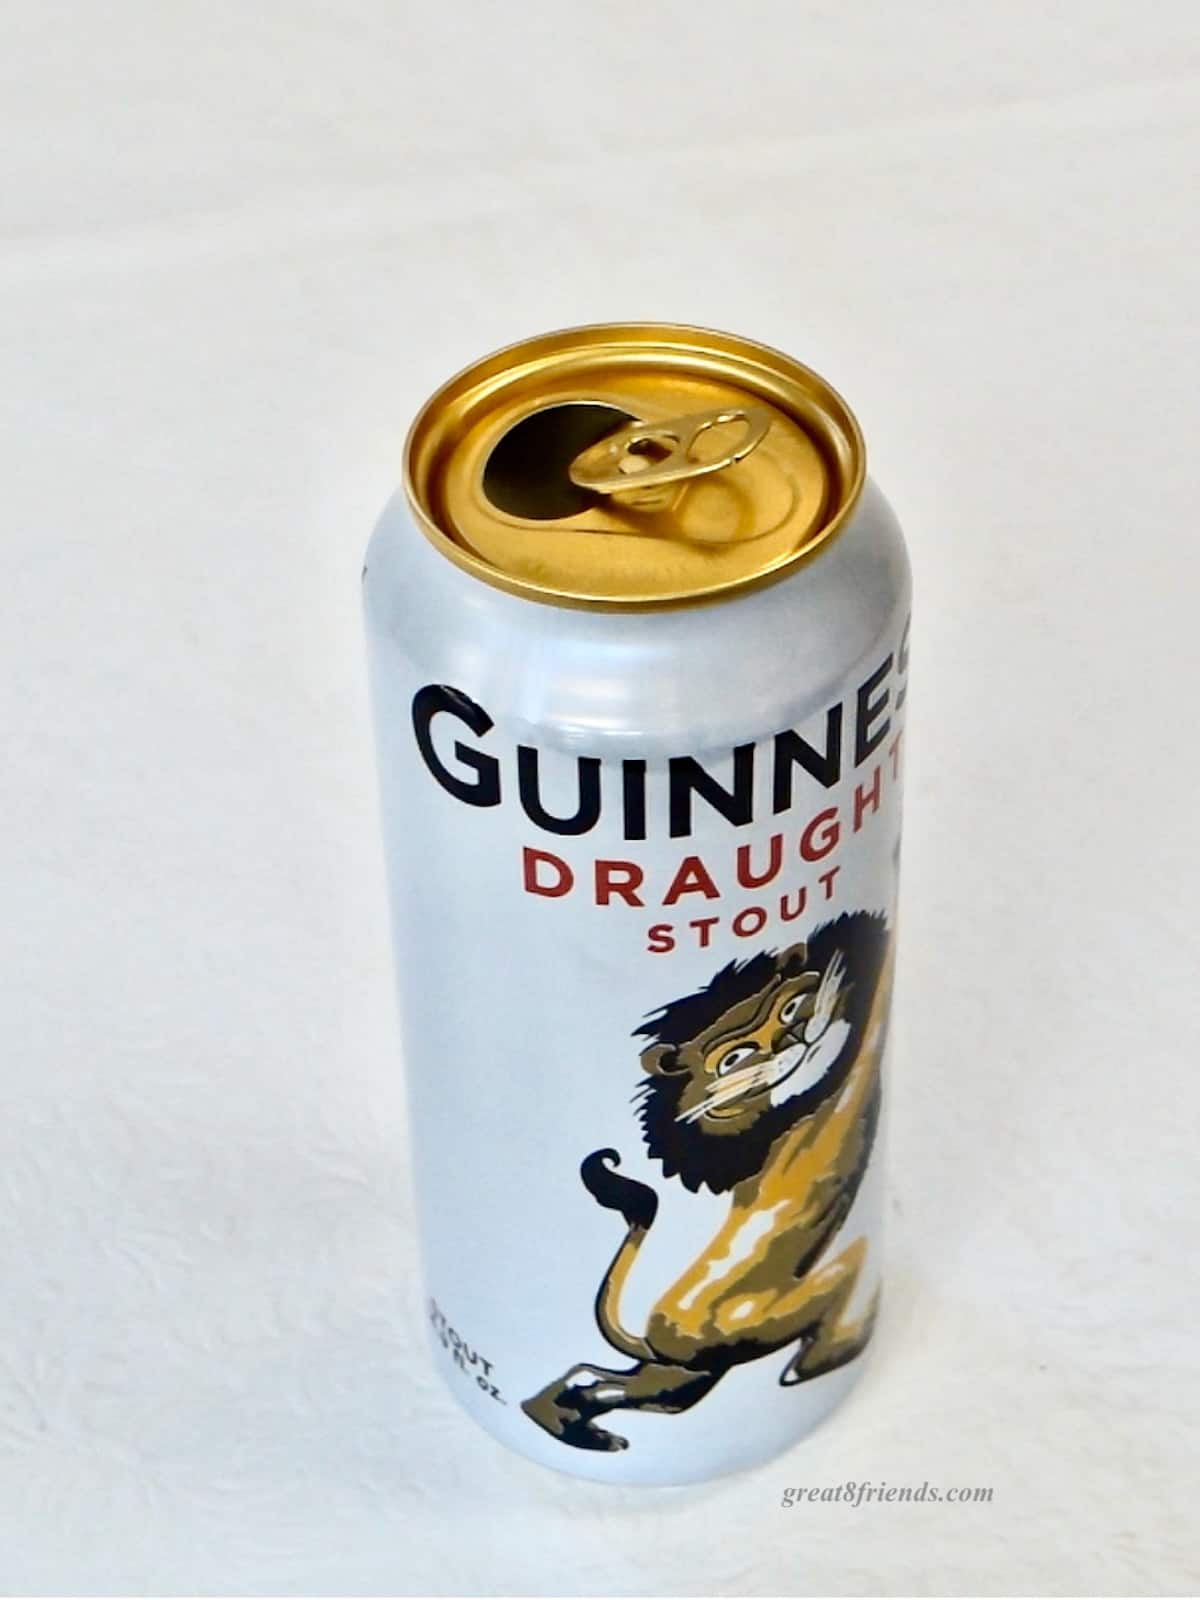 One can of Guinness Draught Stout on a white background.